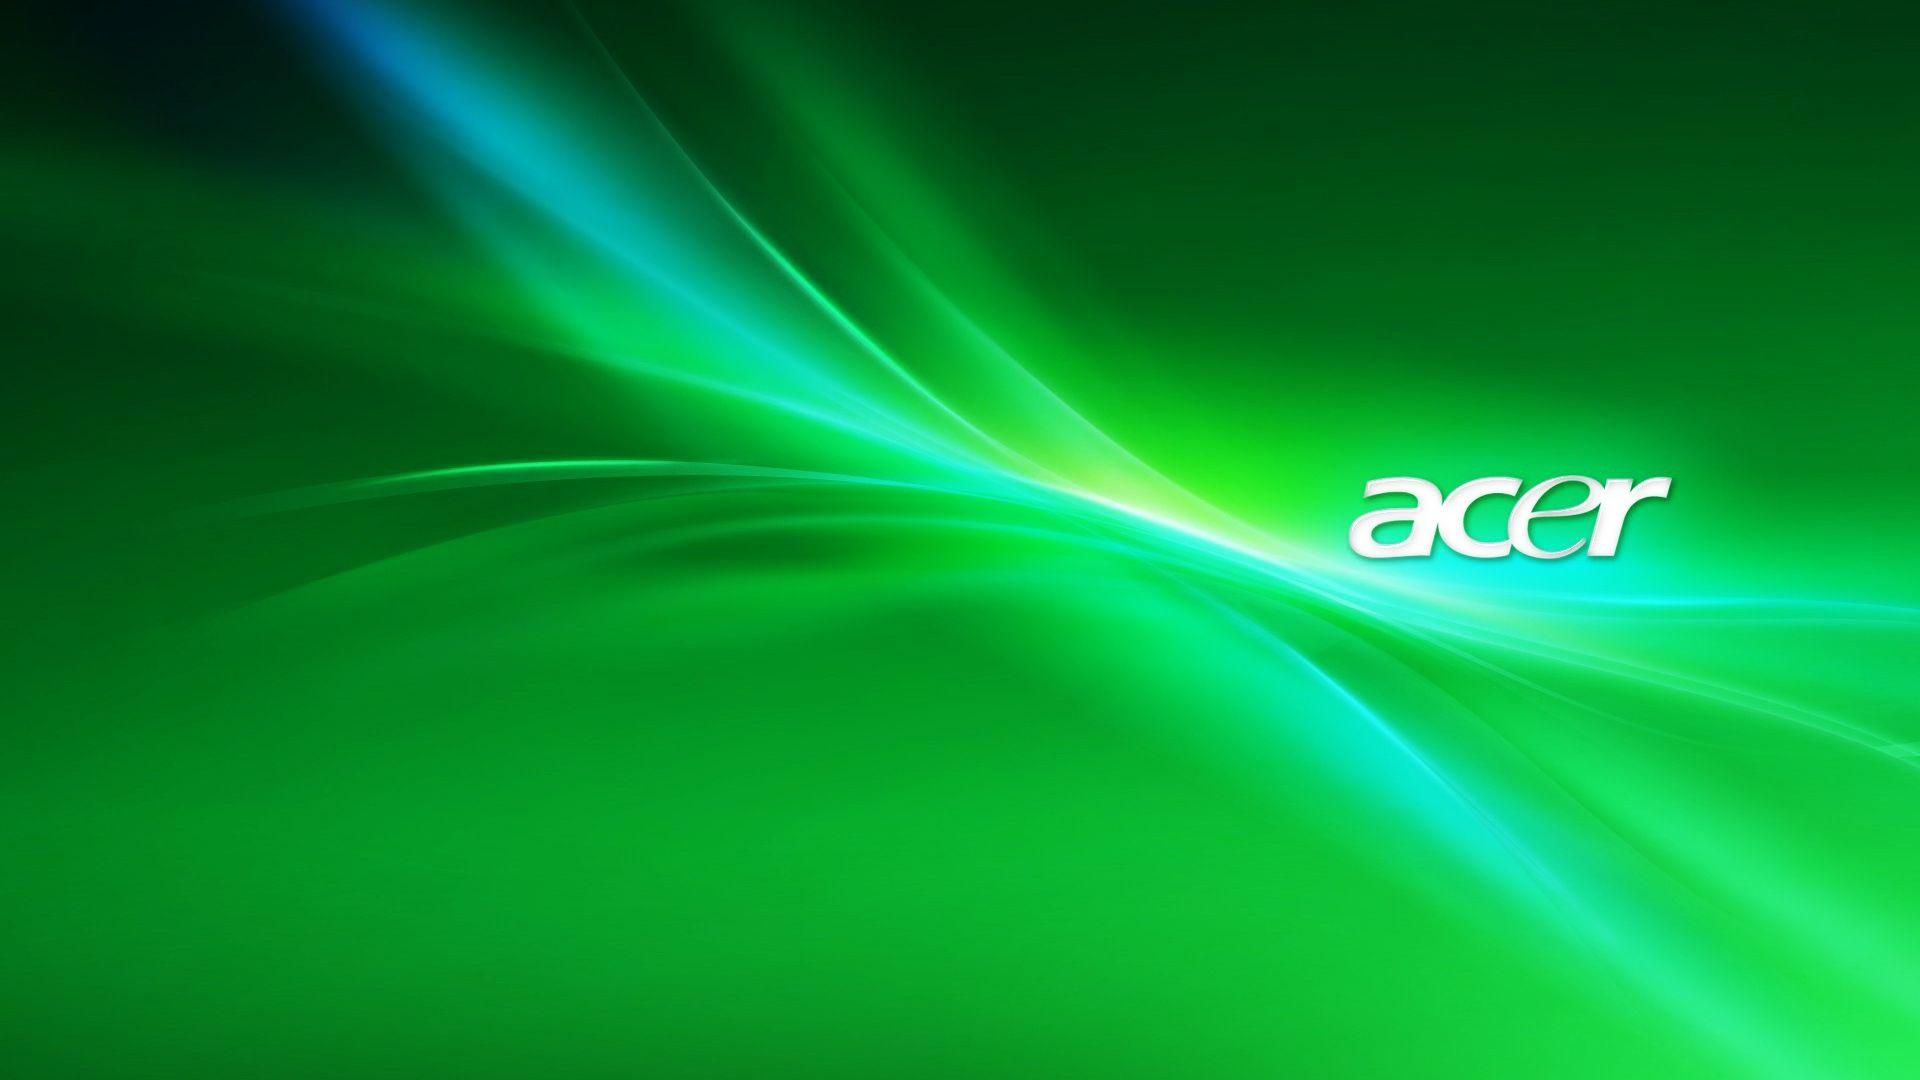 acer wallpapers wallpaper cave